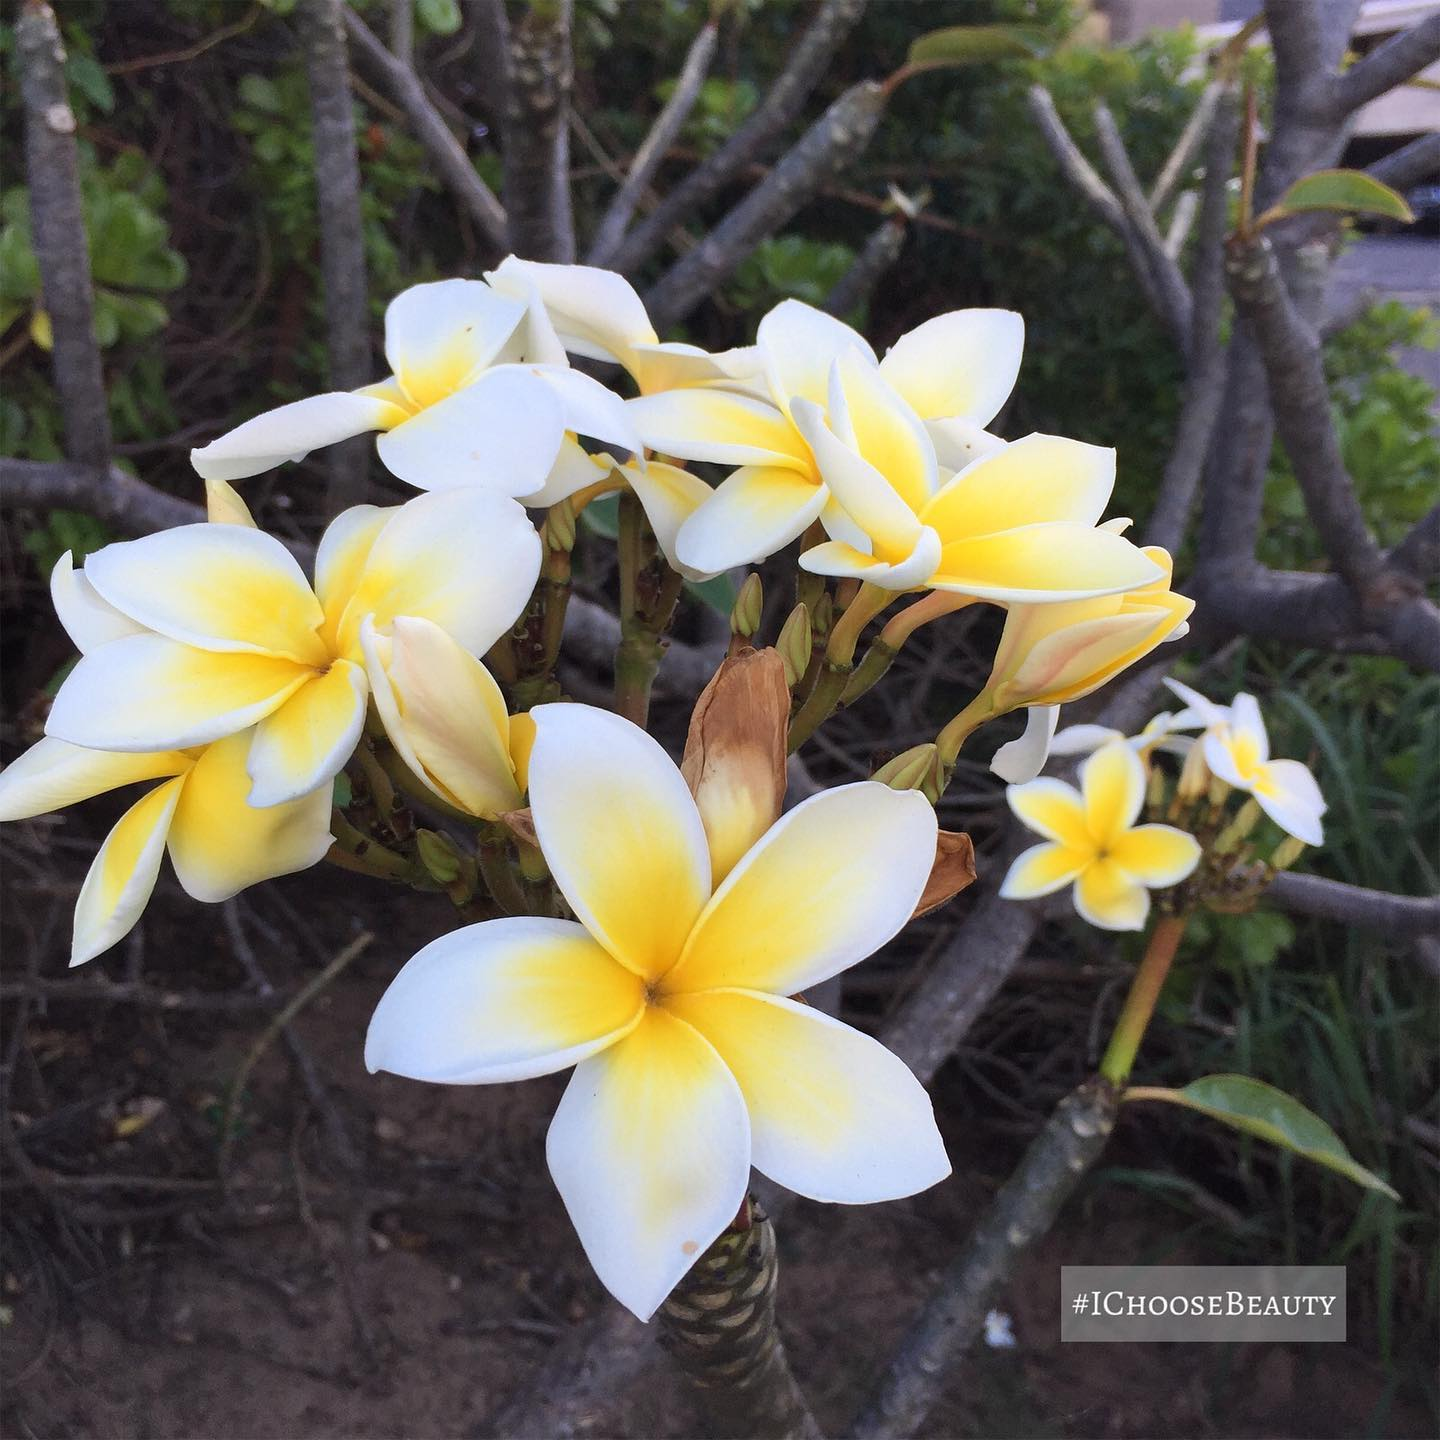 I always stop to smell the plumerias and take in their sweet scent. #ichoosebeauty Day 2698